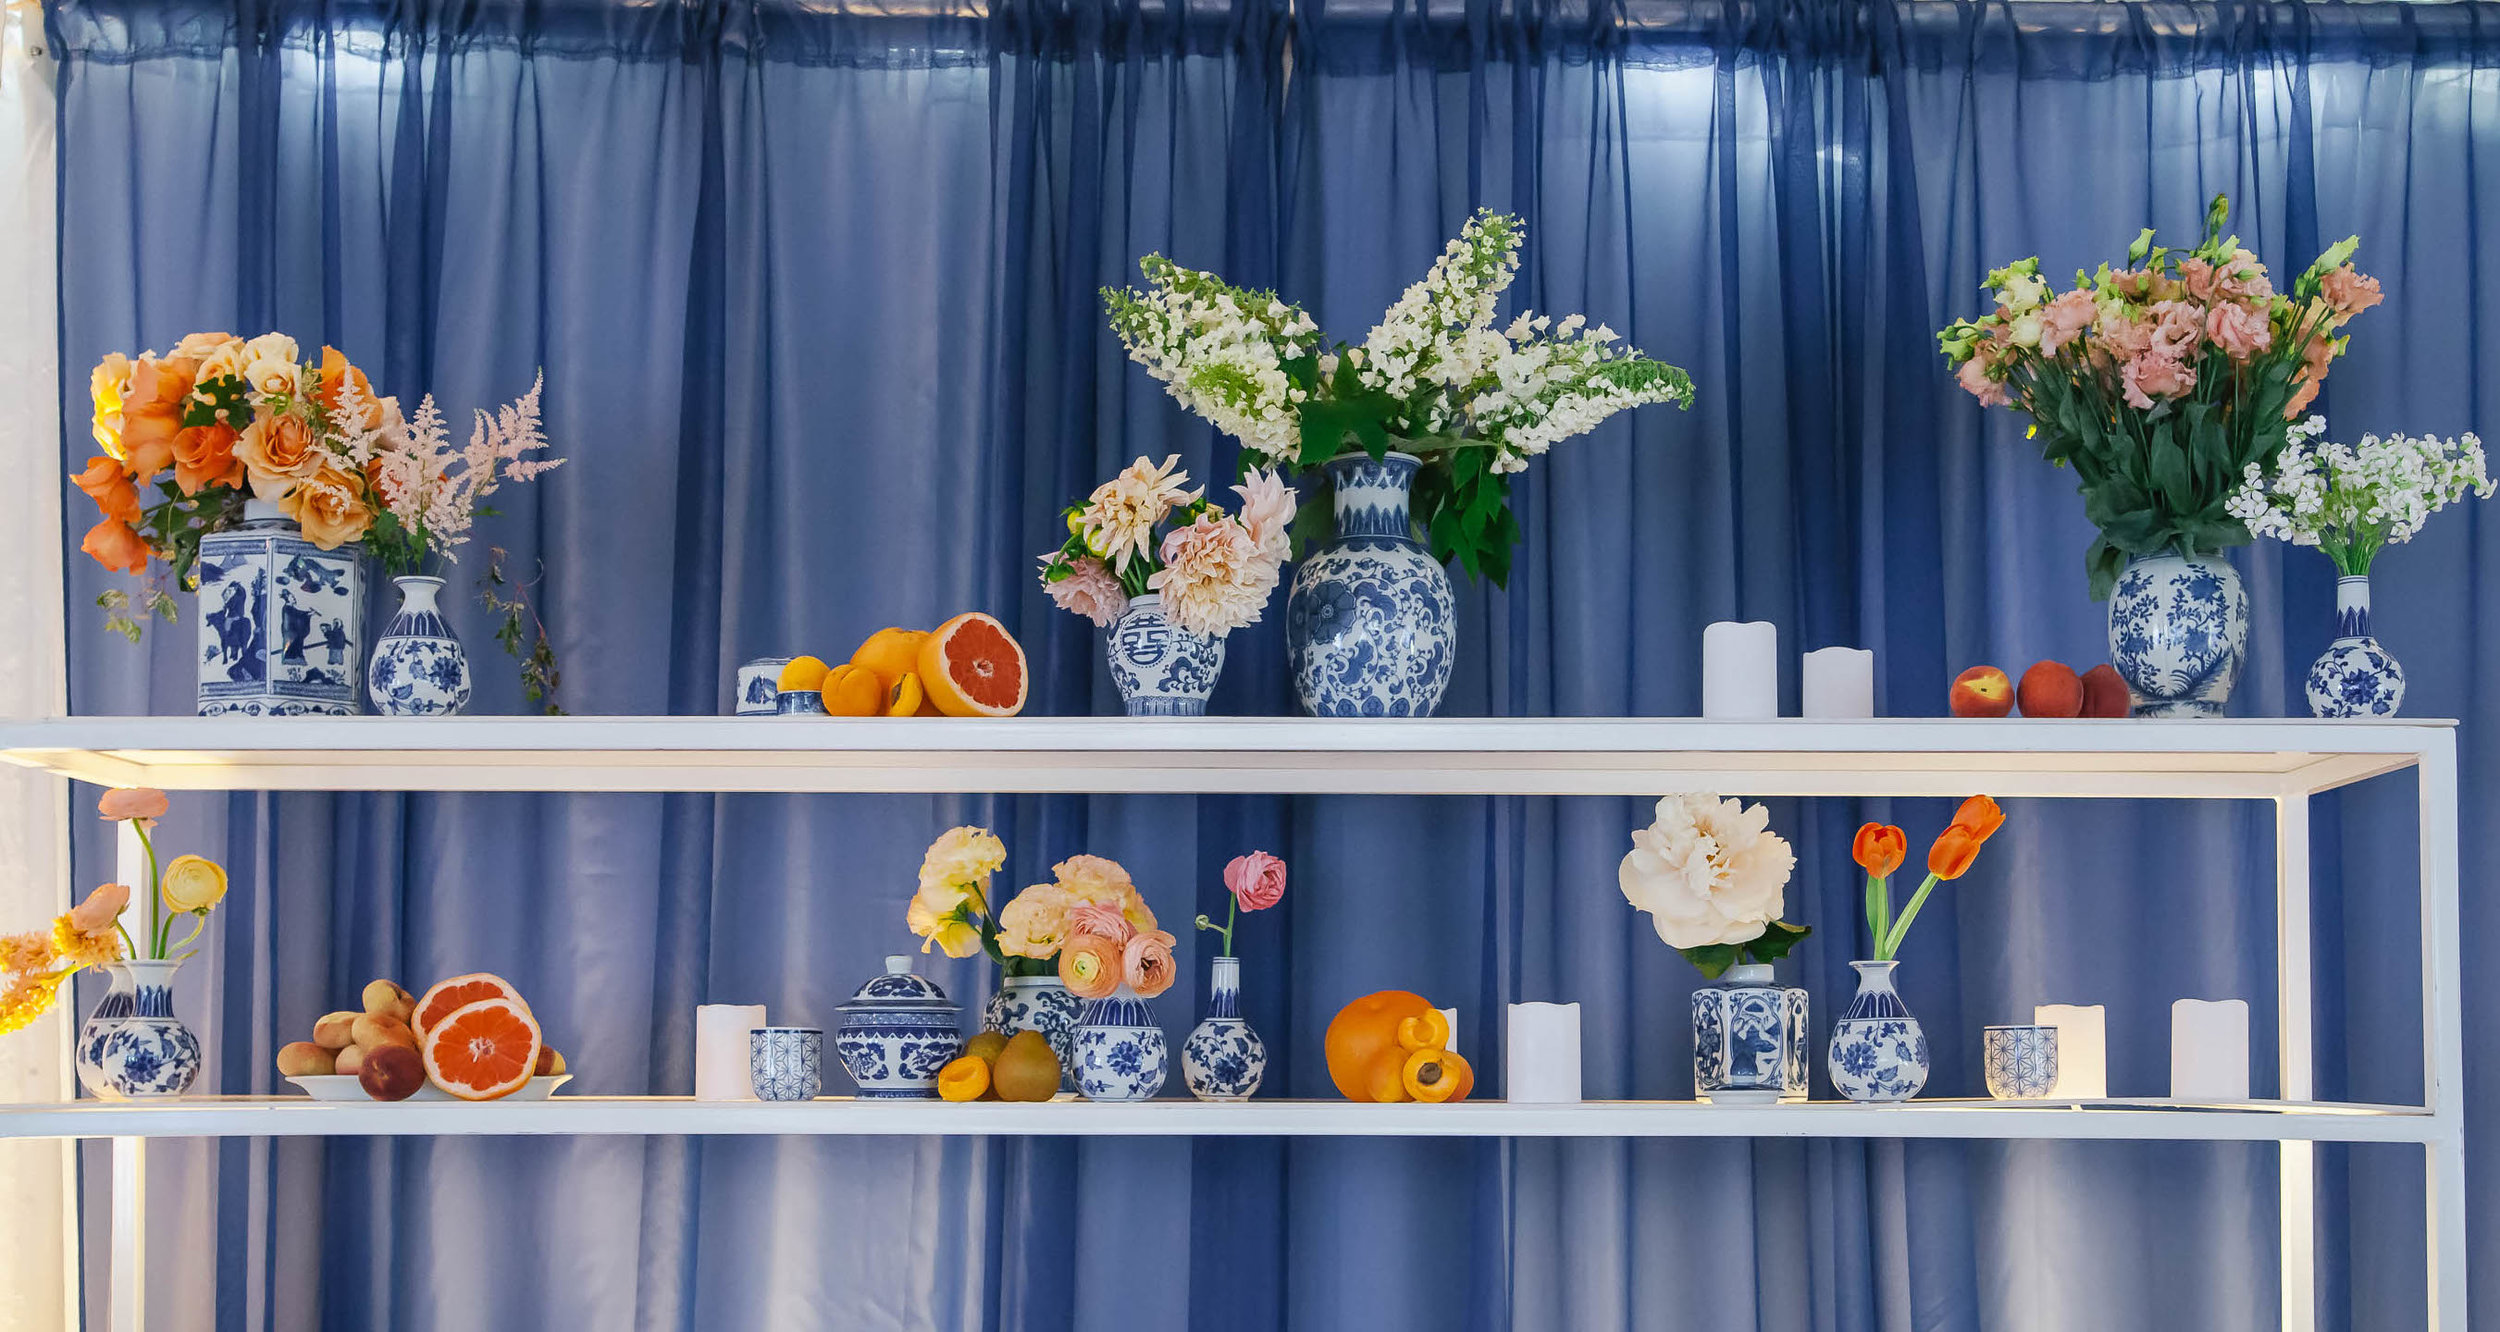 A Southern wedding and event florist with a passion for design.